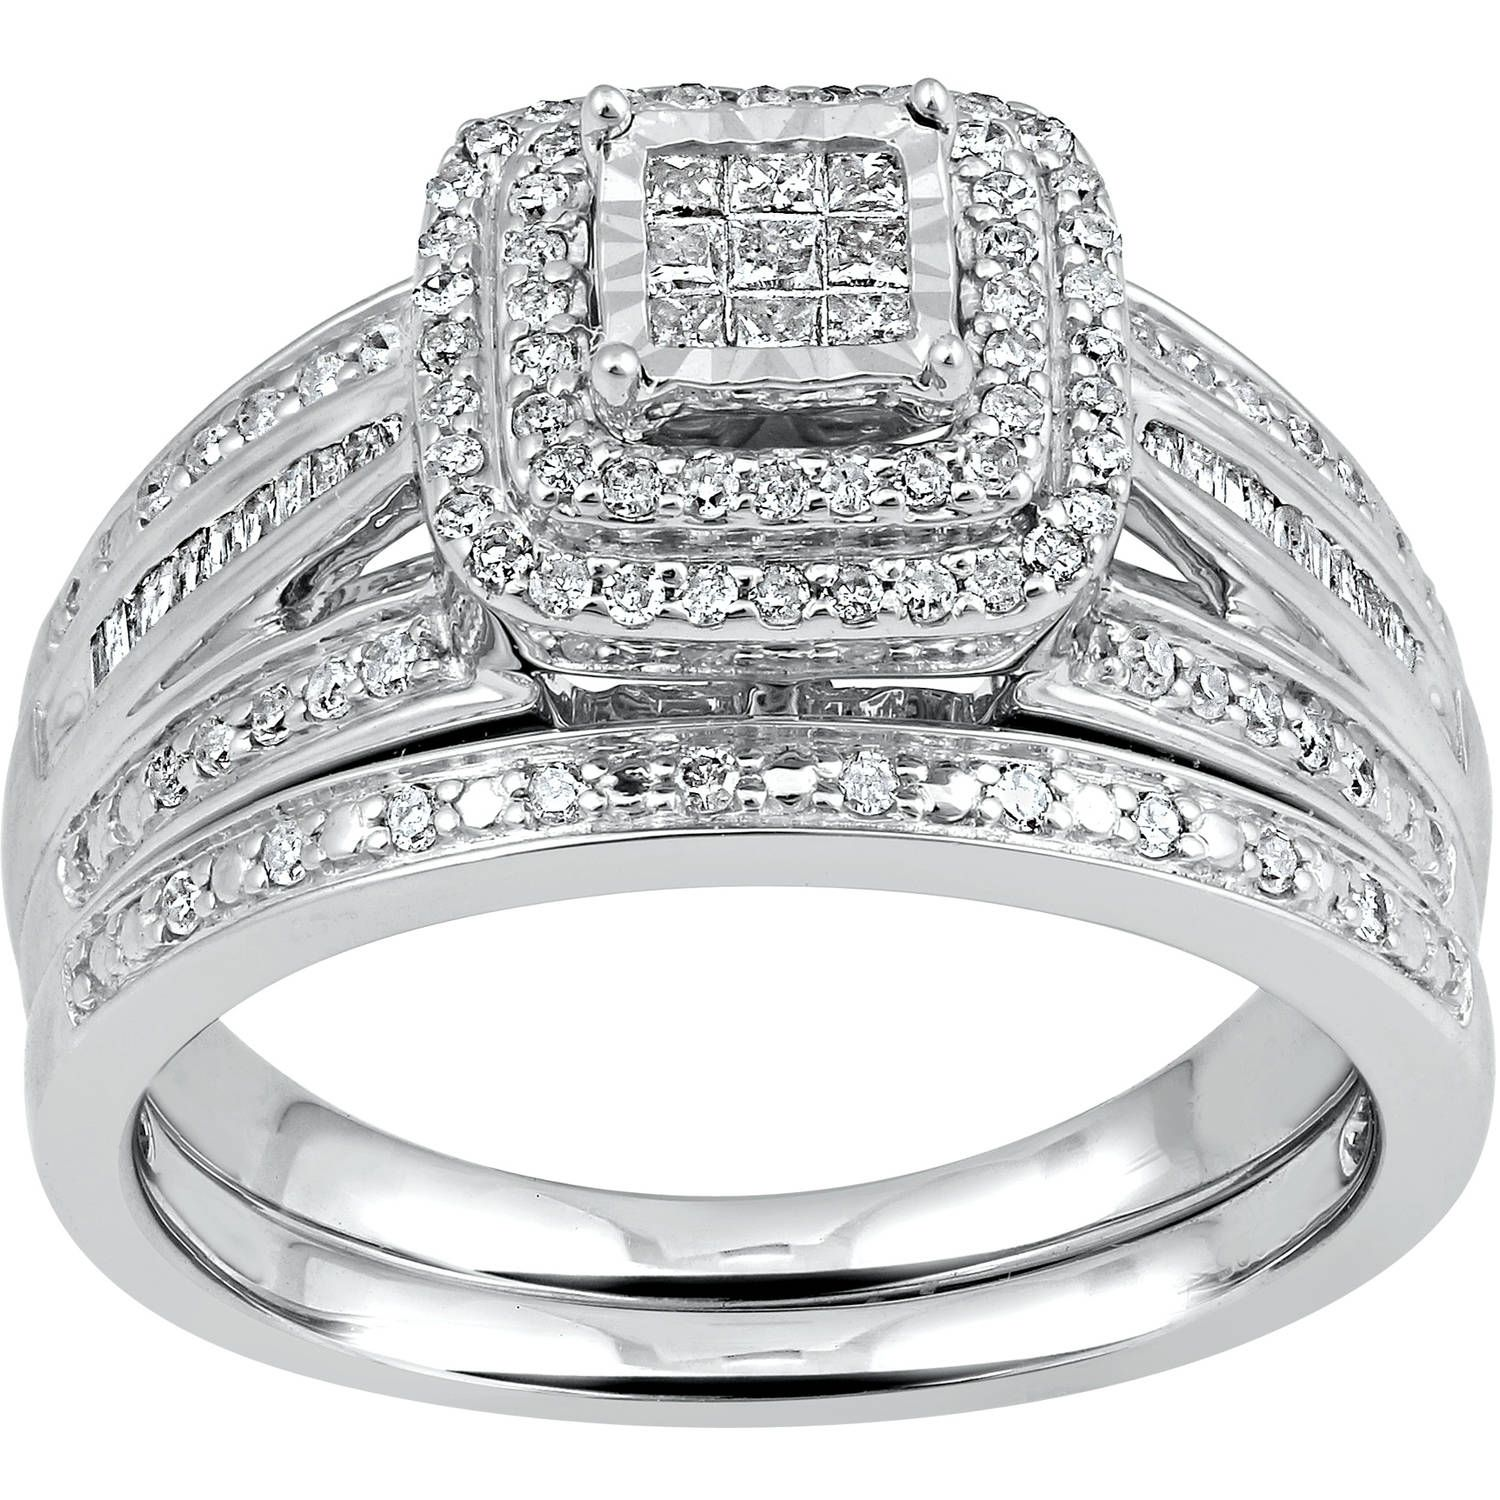 Walmart Wedding Bands.Womens Wedding Ring Sets Walmart Woman Rewarded For